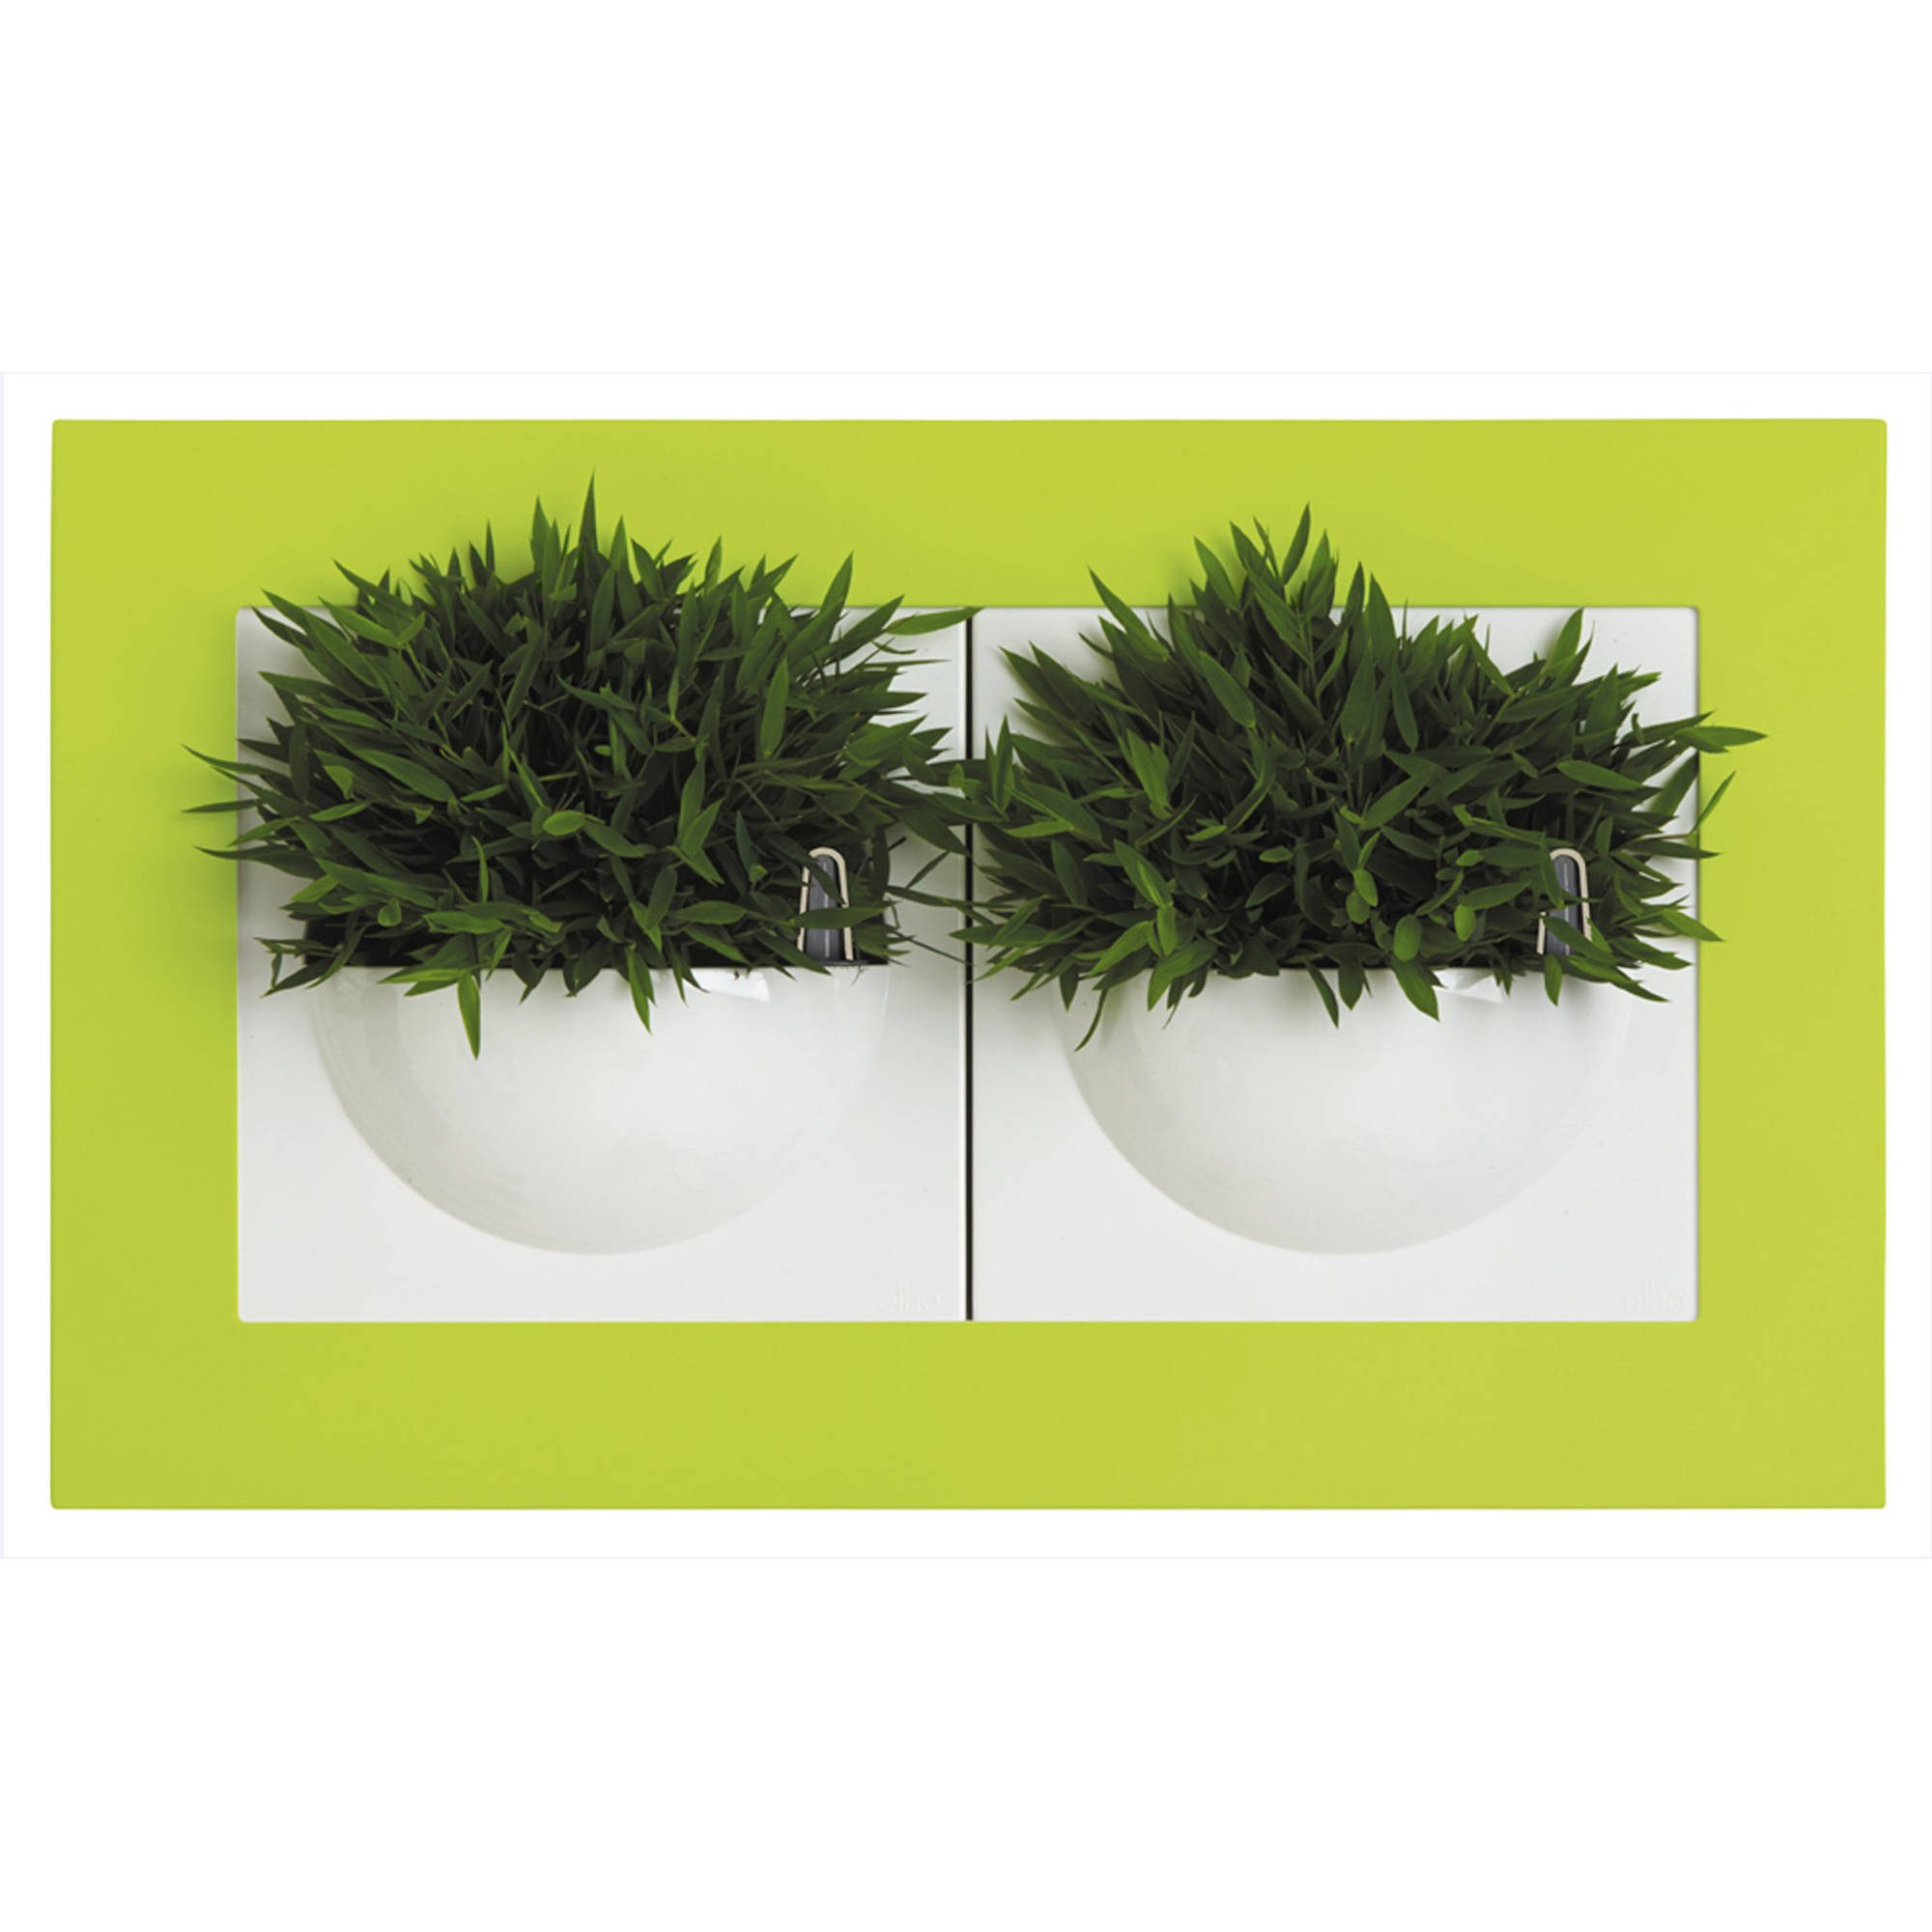 Image of Double Gallery Wall Planter, White/Lime Green